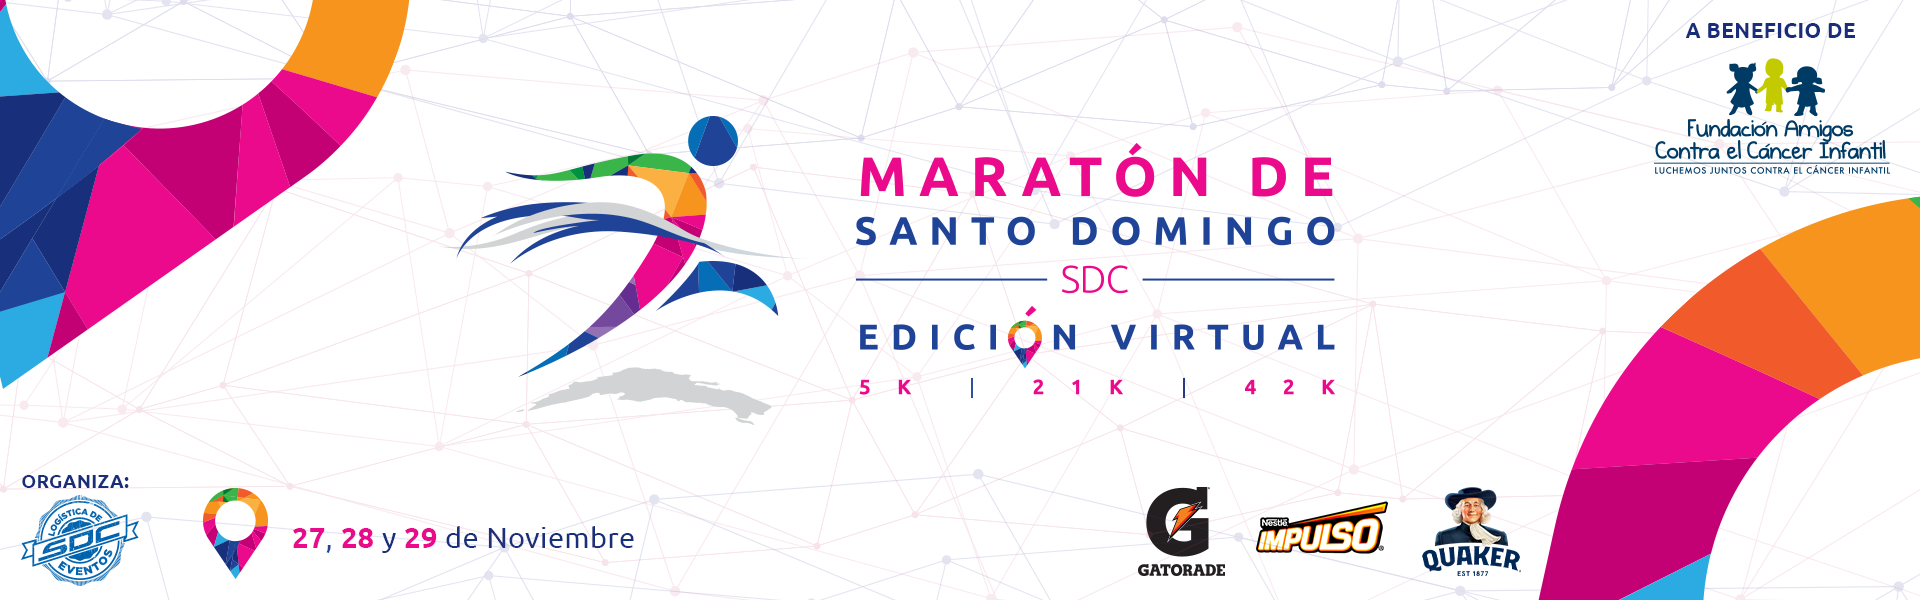 Maratón de Santo Domingo Virtual